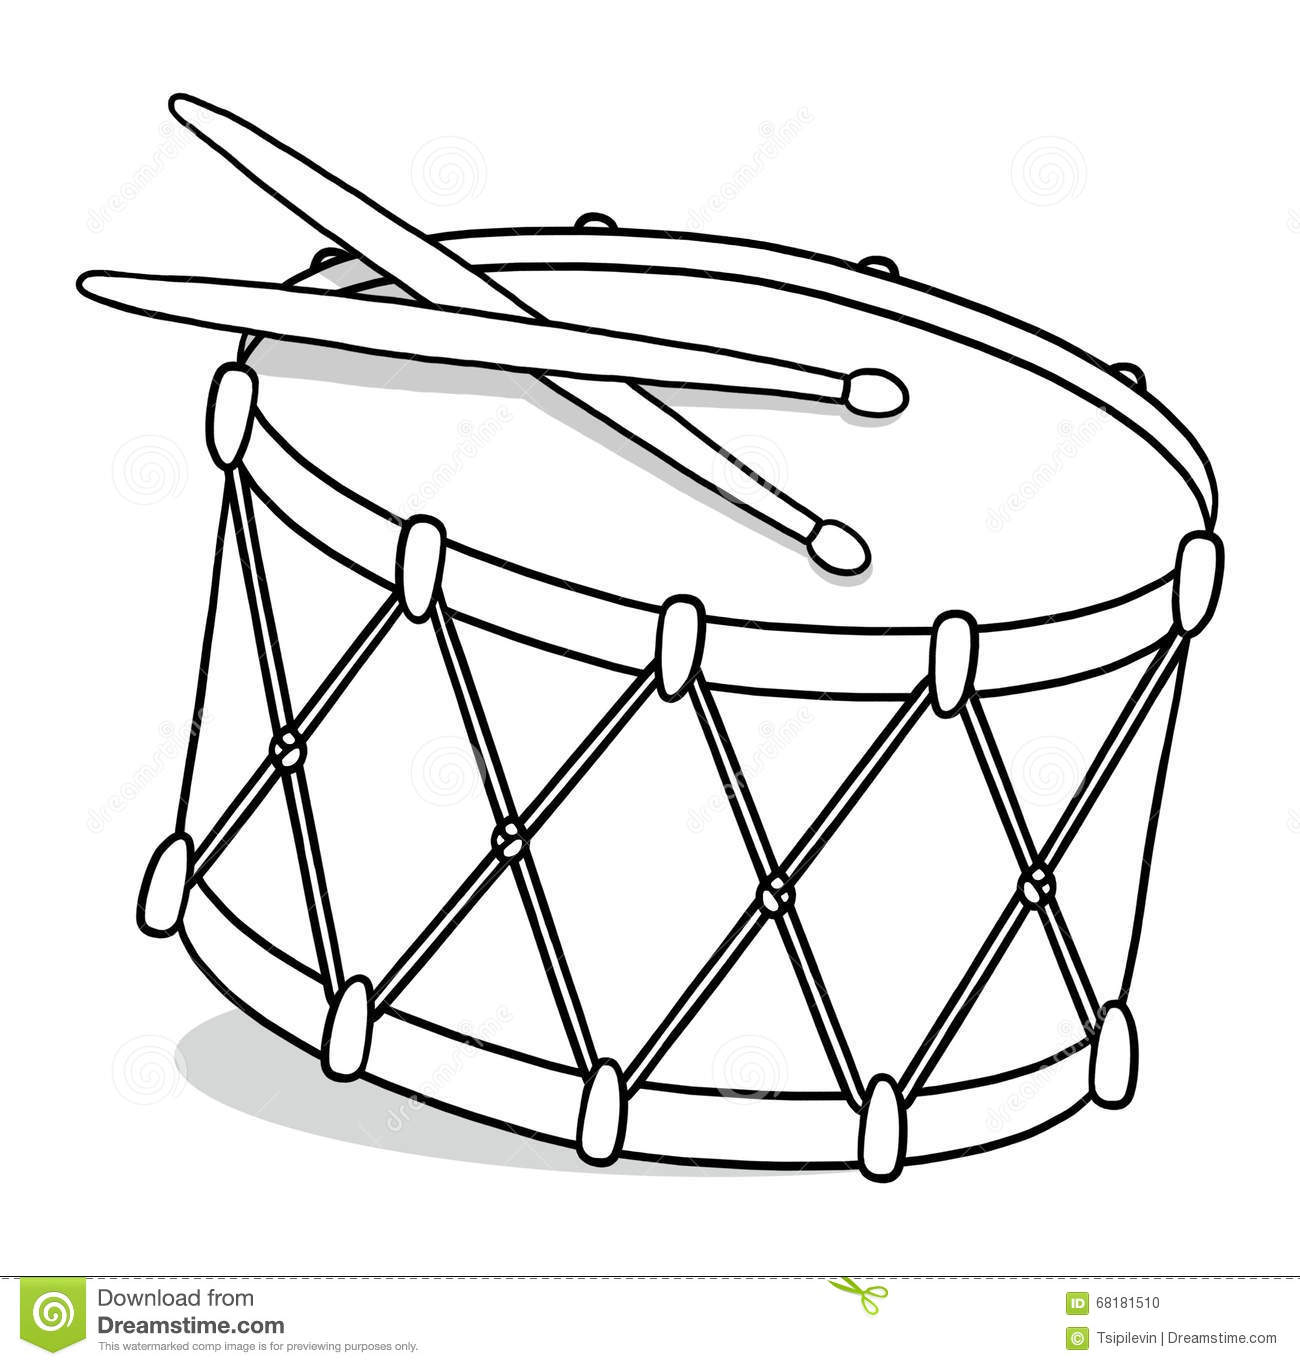 Drum Outline Illustration Royalty Free Illustration